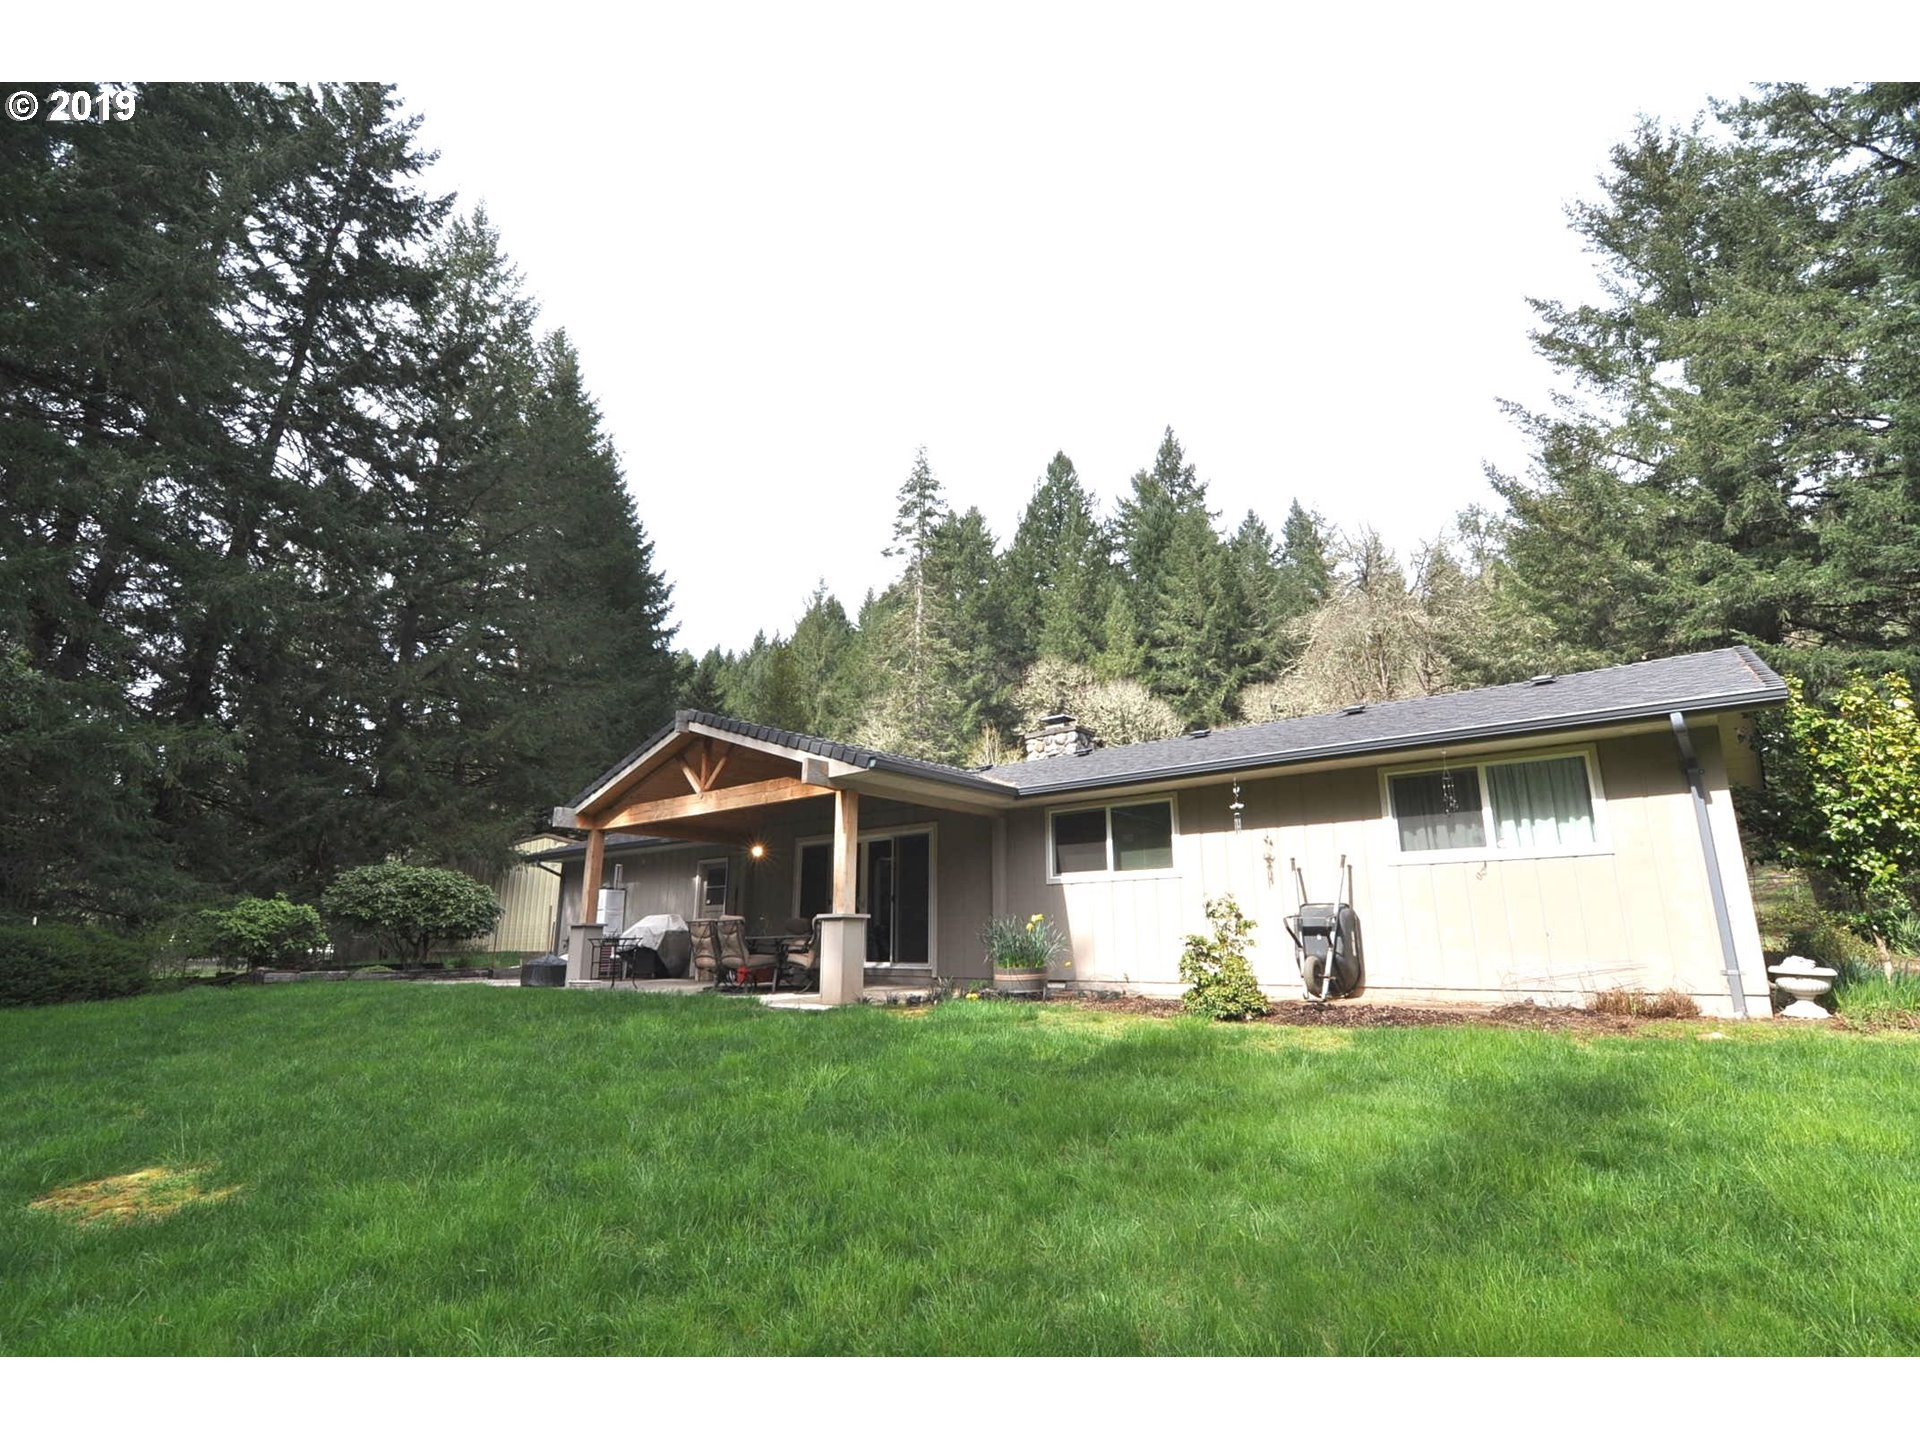 15405 Nw Baker Creek Rd Mcminnville Or 97128 Listing